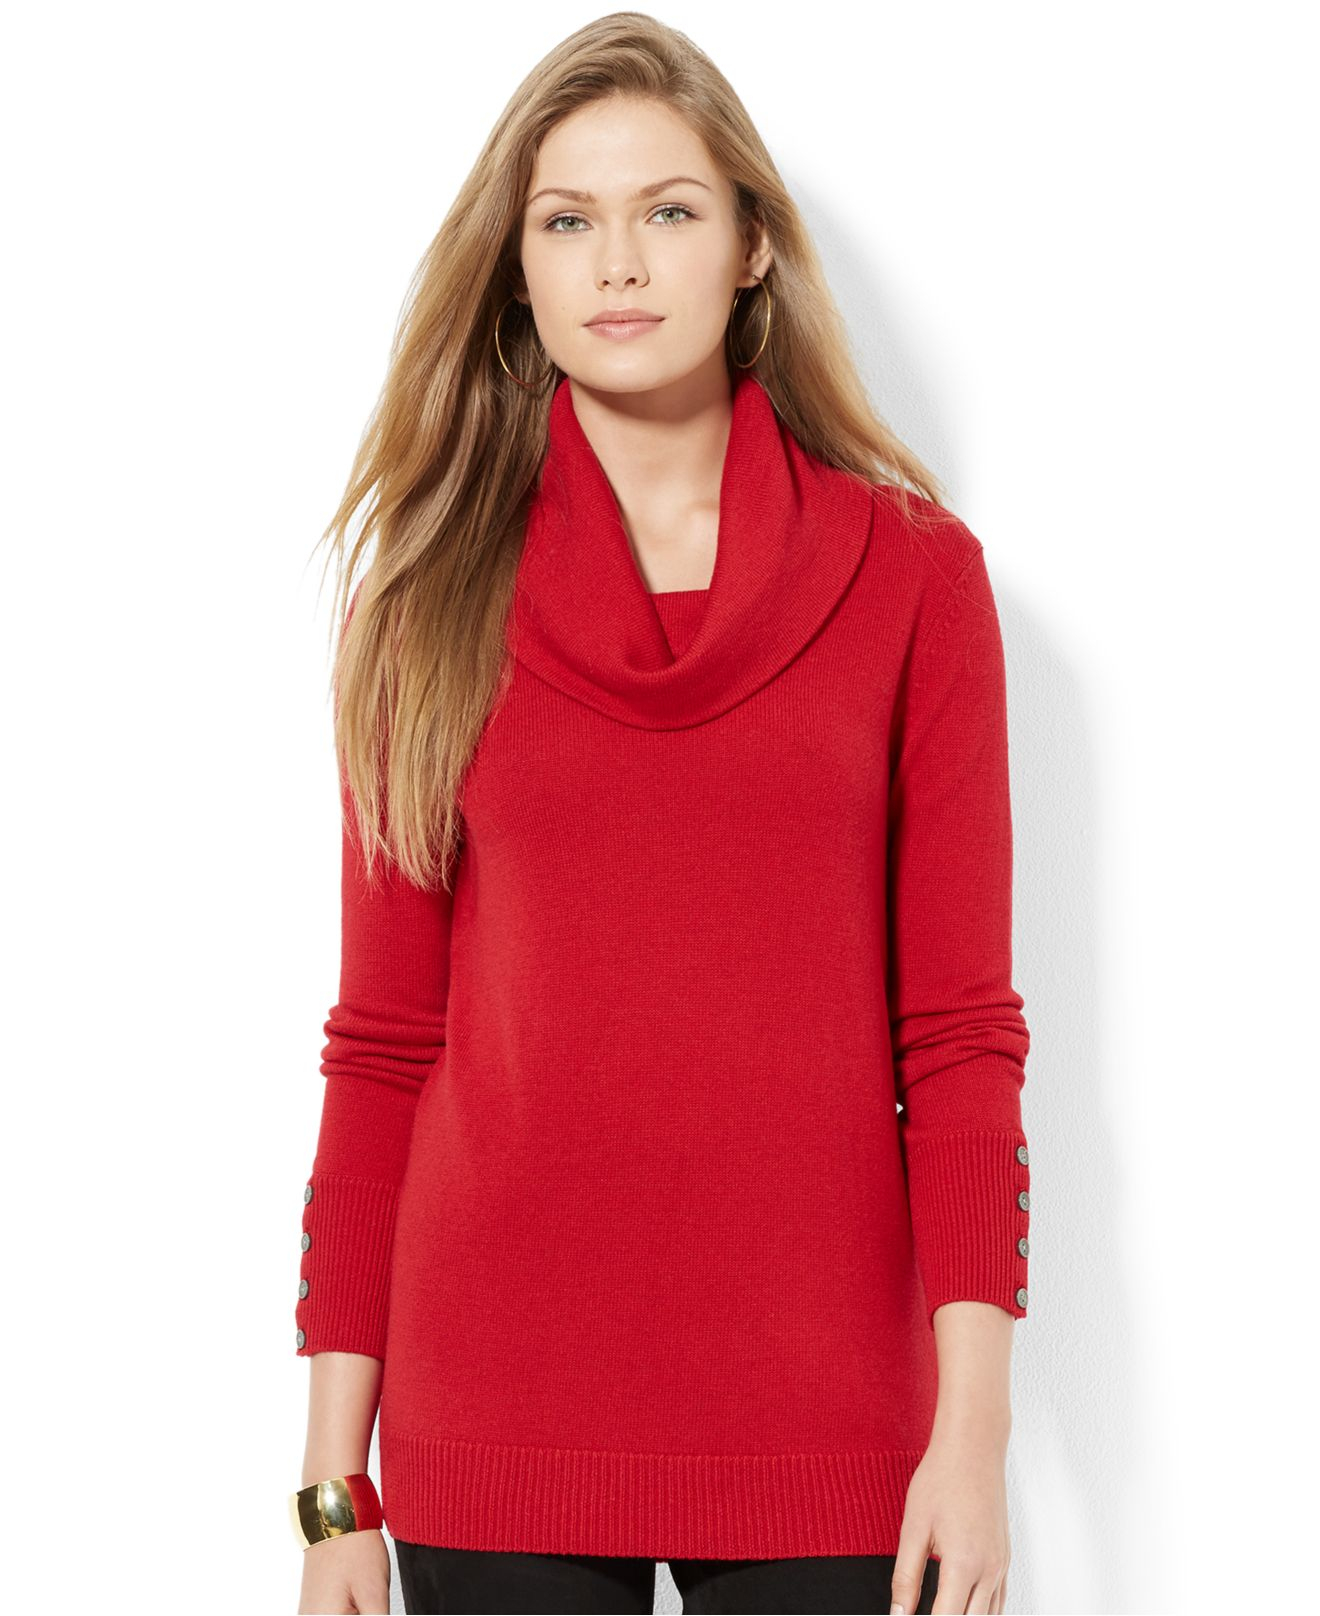 Lauren by ralph lauren Cowl-Neck Button-Cuff Sweater in Red | Lyst